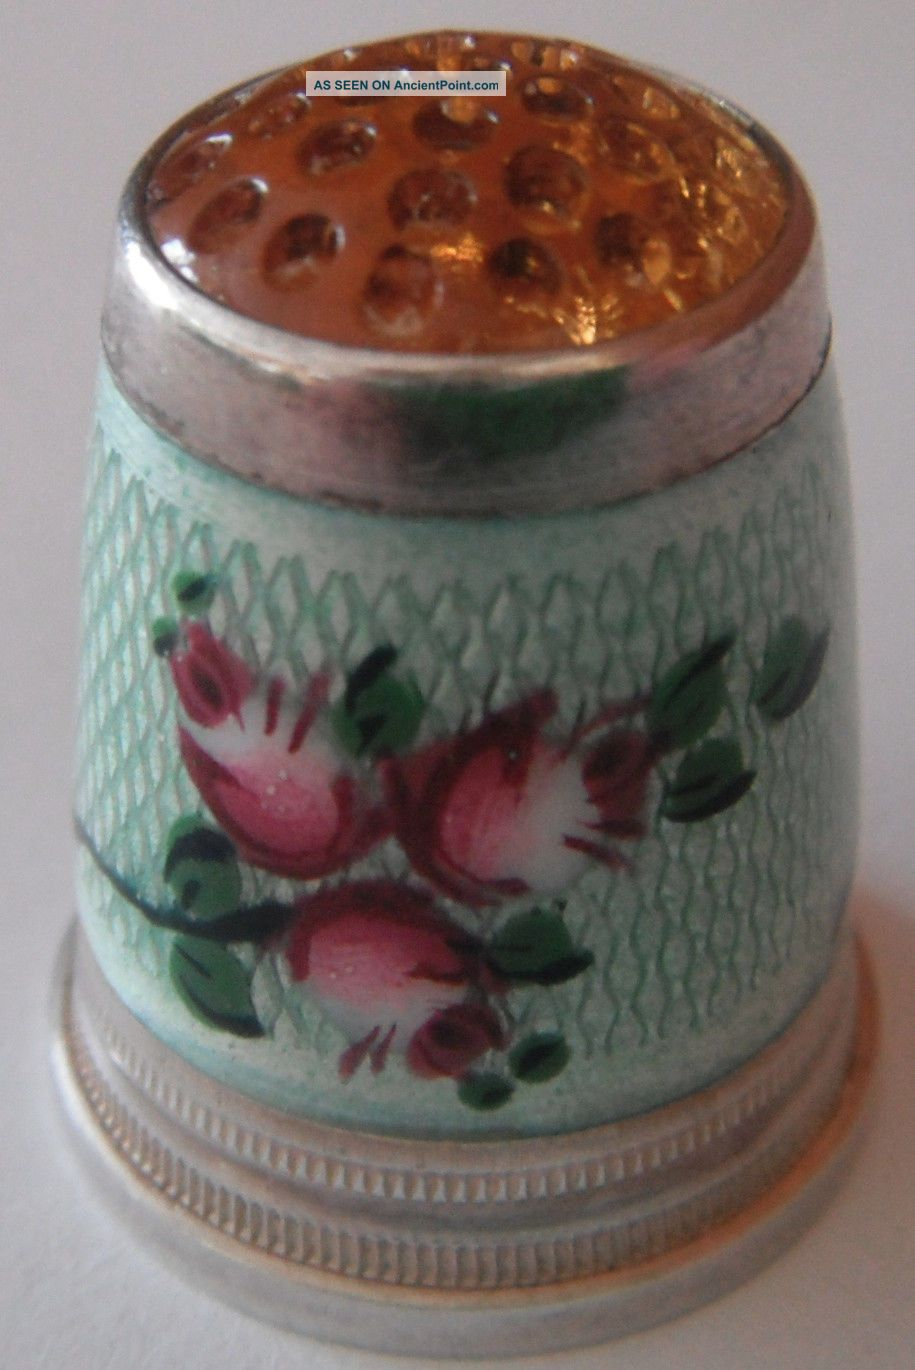 Antique 935 Sterling Silver Thimble Size 6 Enamel With Roses And Amber Top Thimbles photo